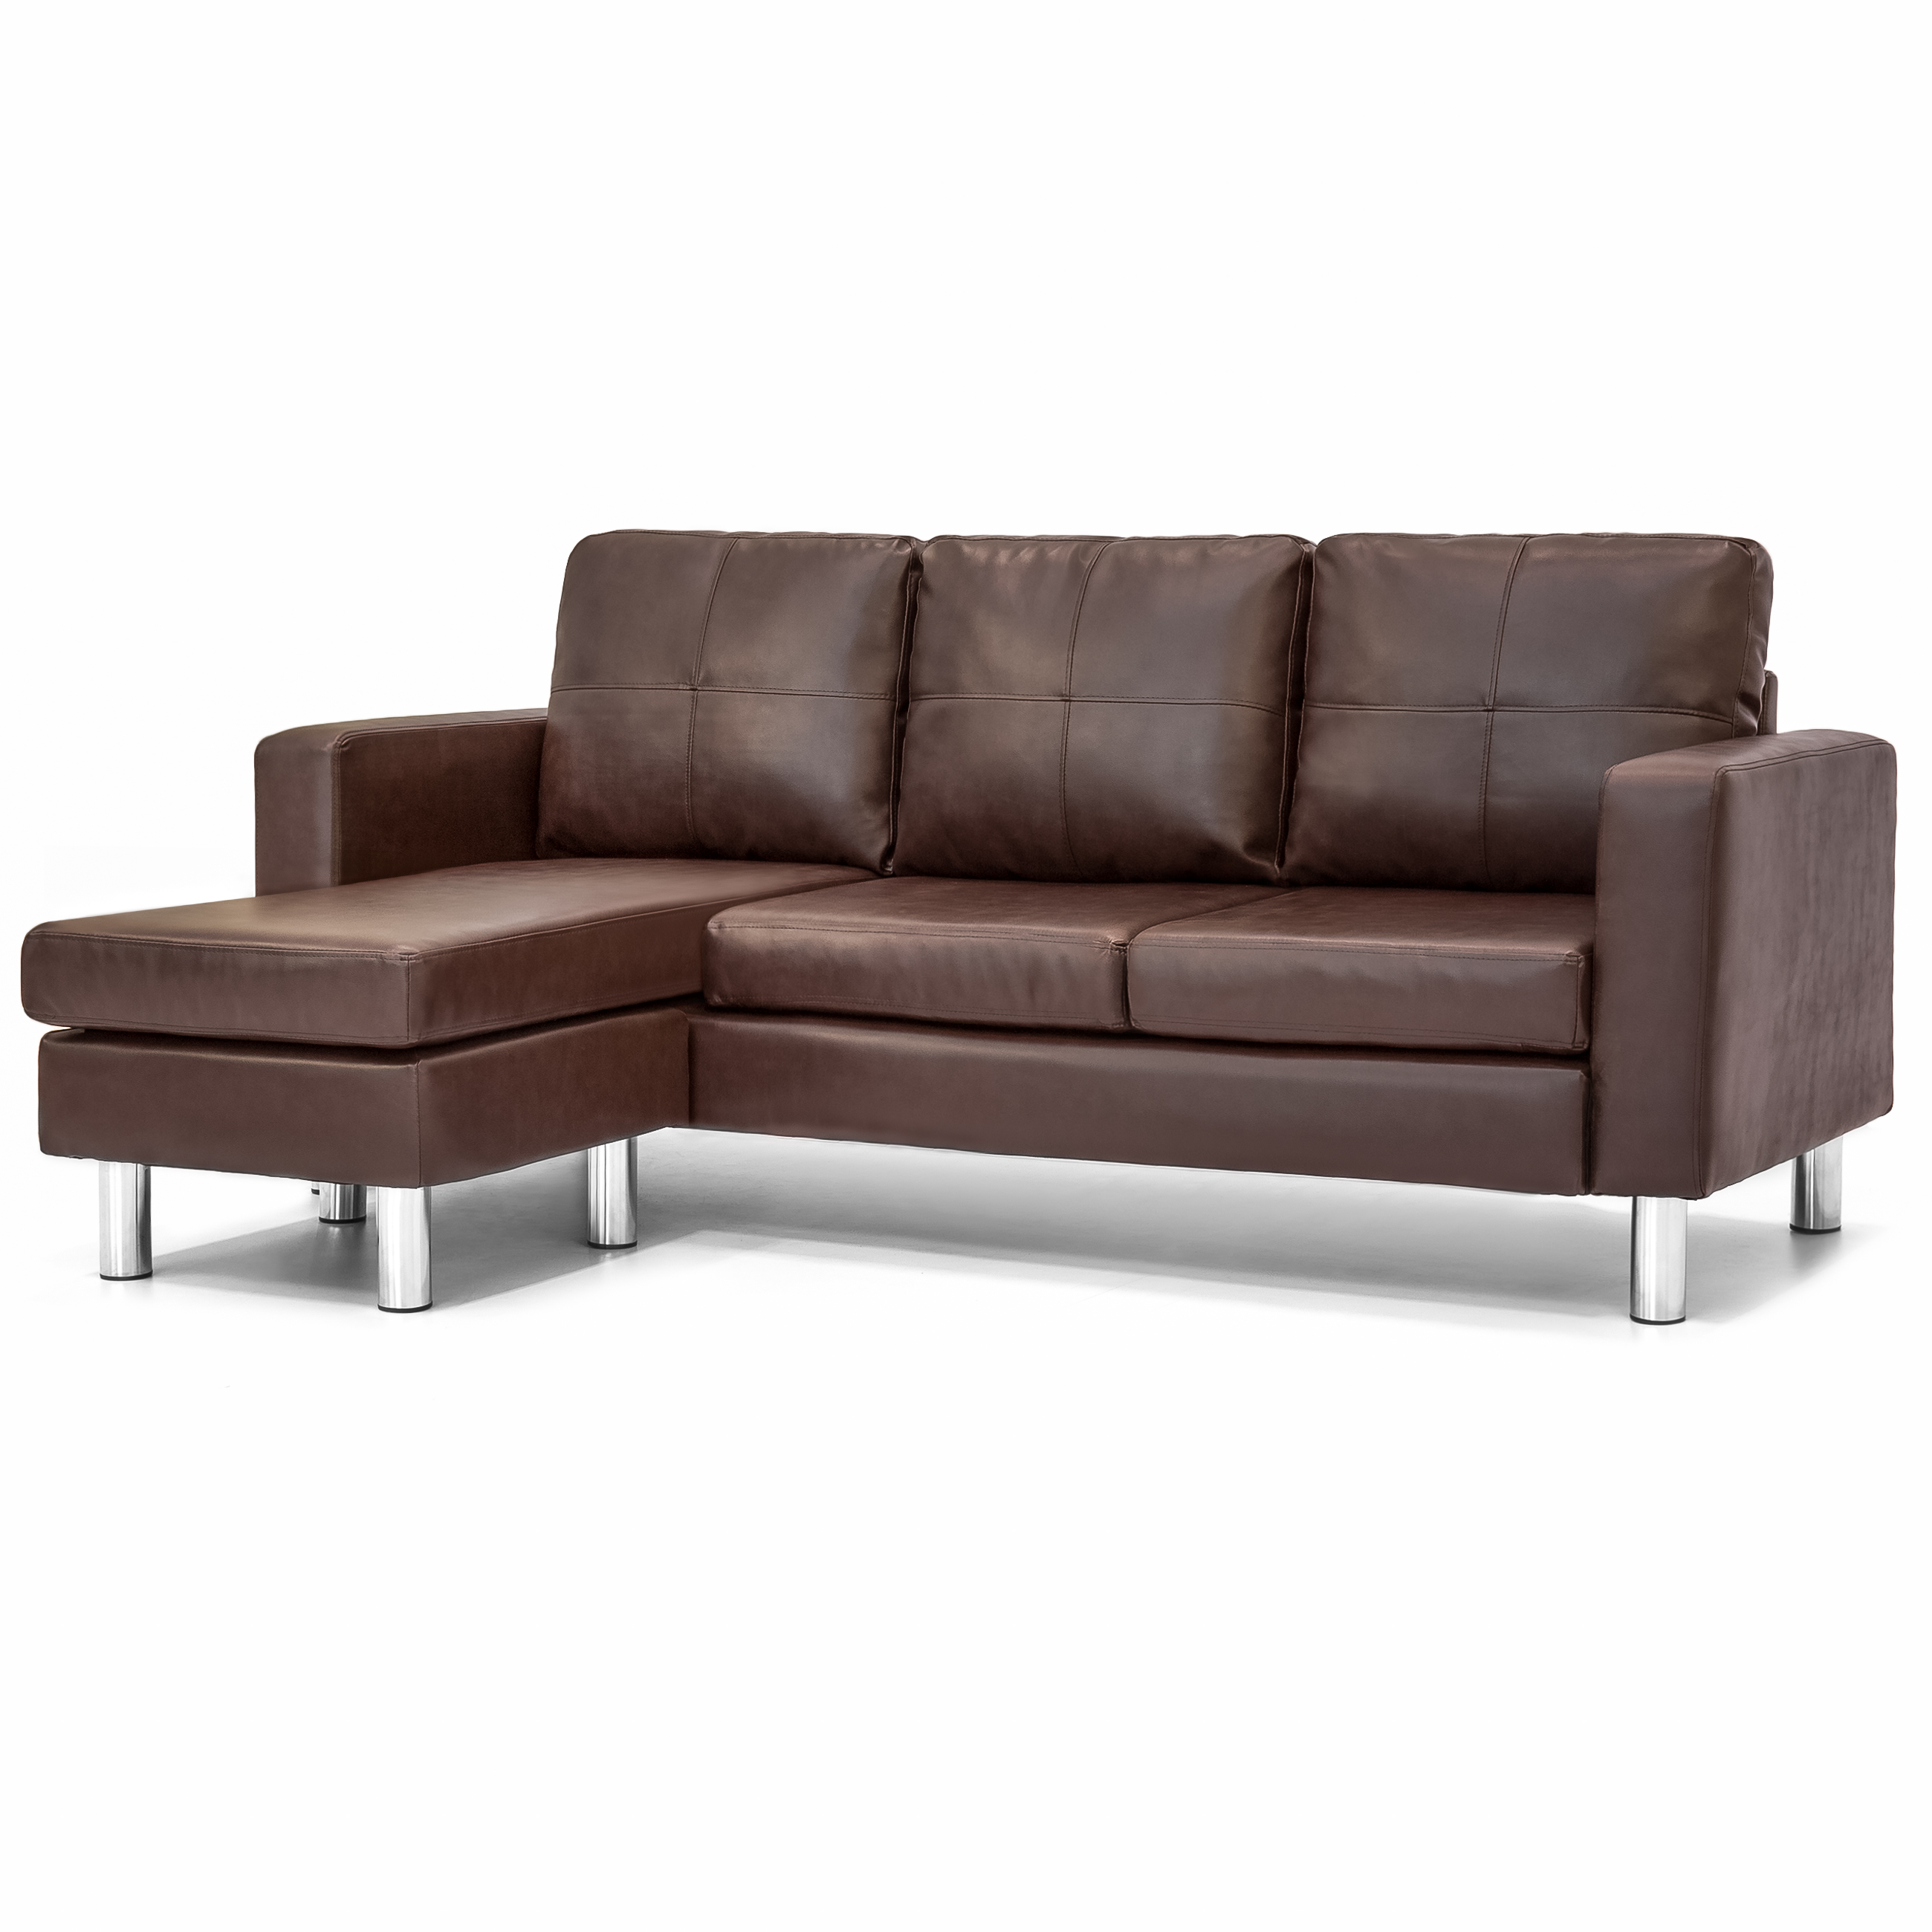 Best Choice Products Leather L-Shape Sectional Sofa Couch w/ Reversible Chaise Ottoman (Brown)